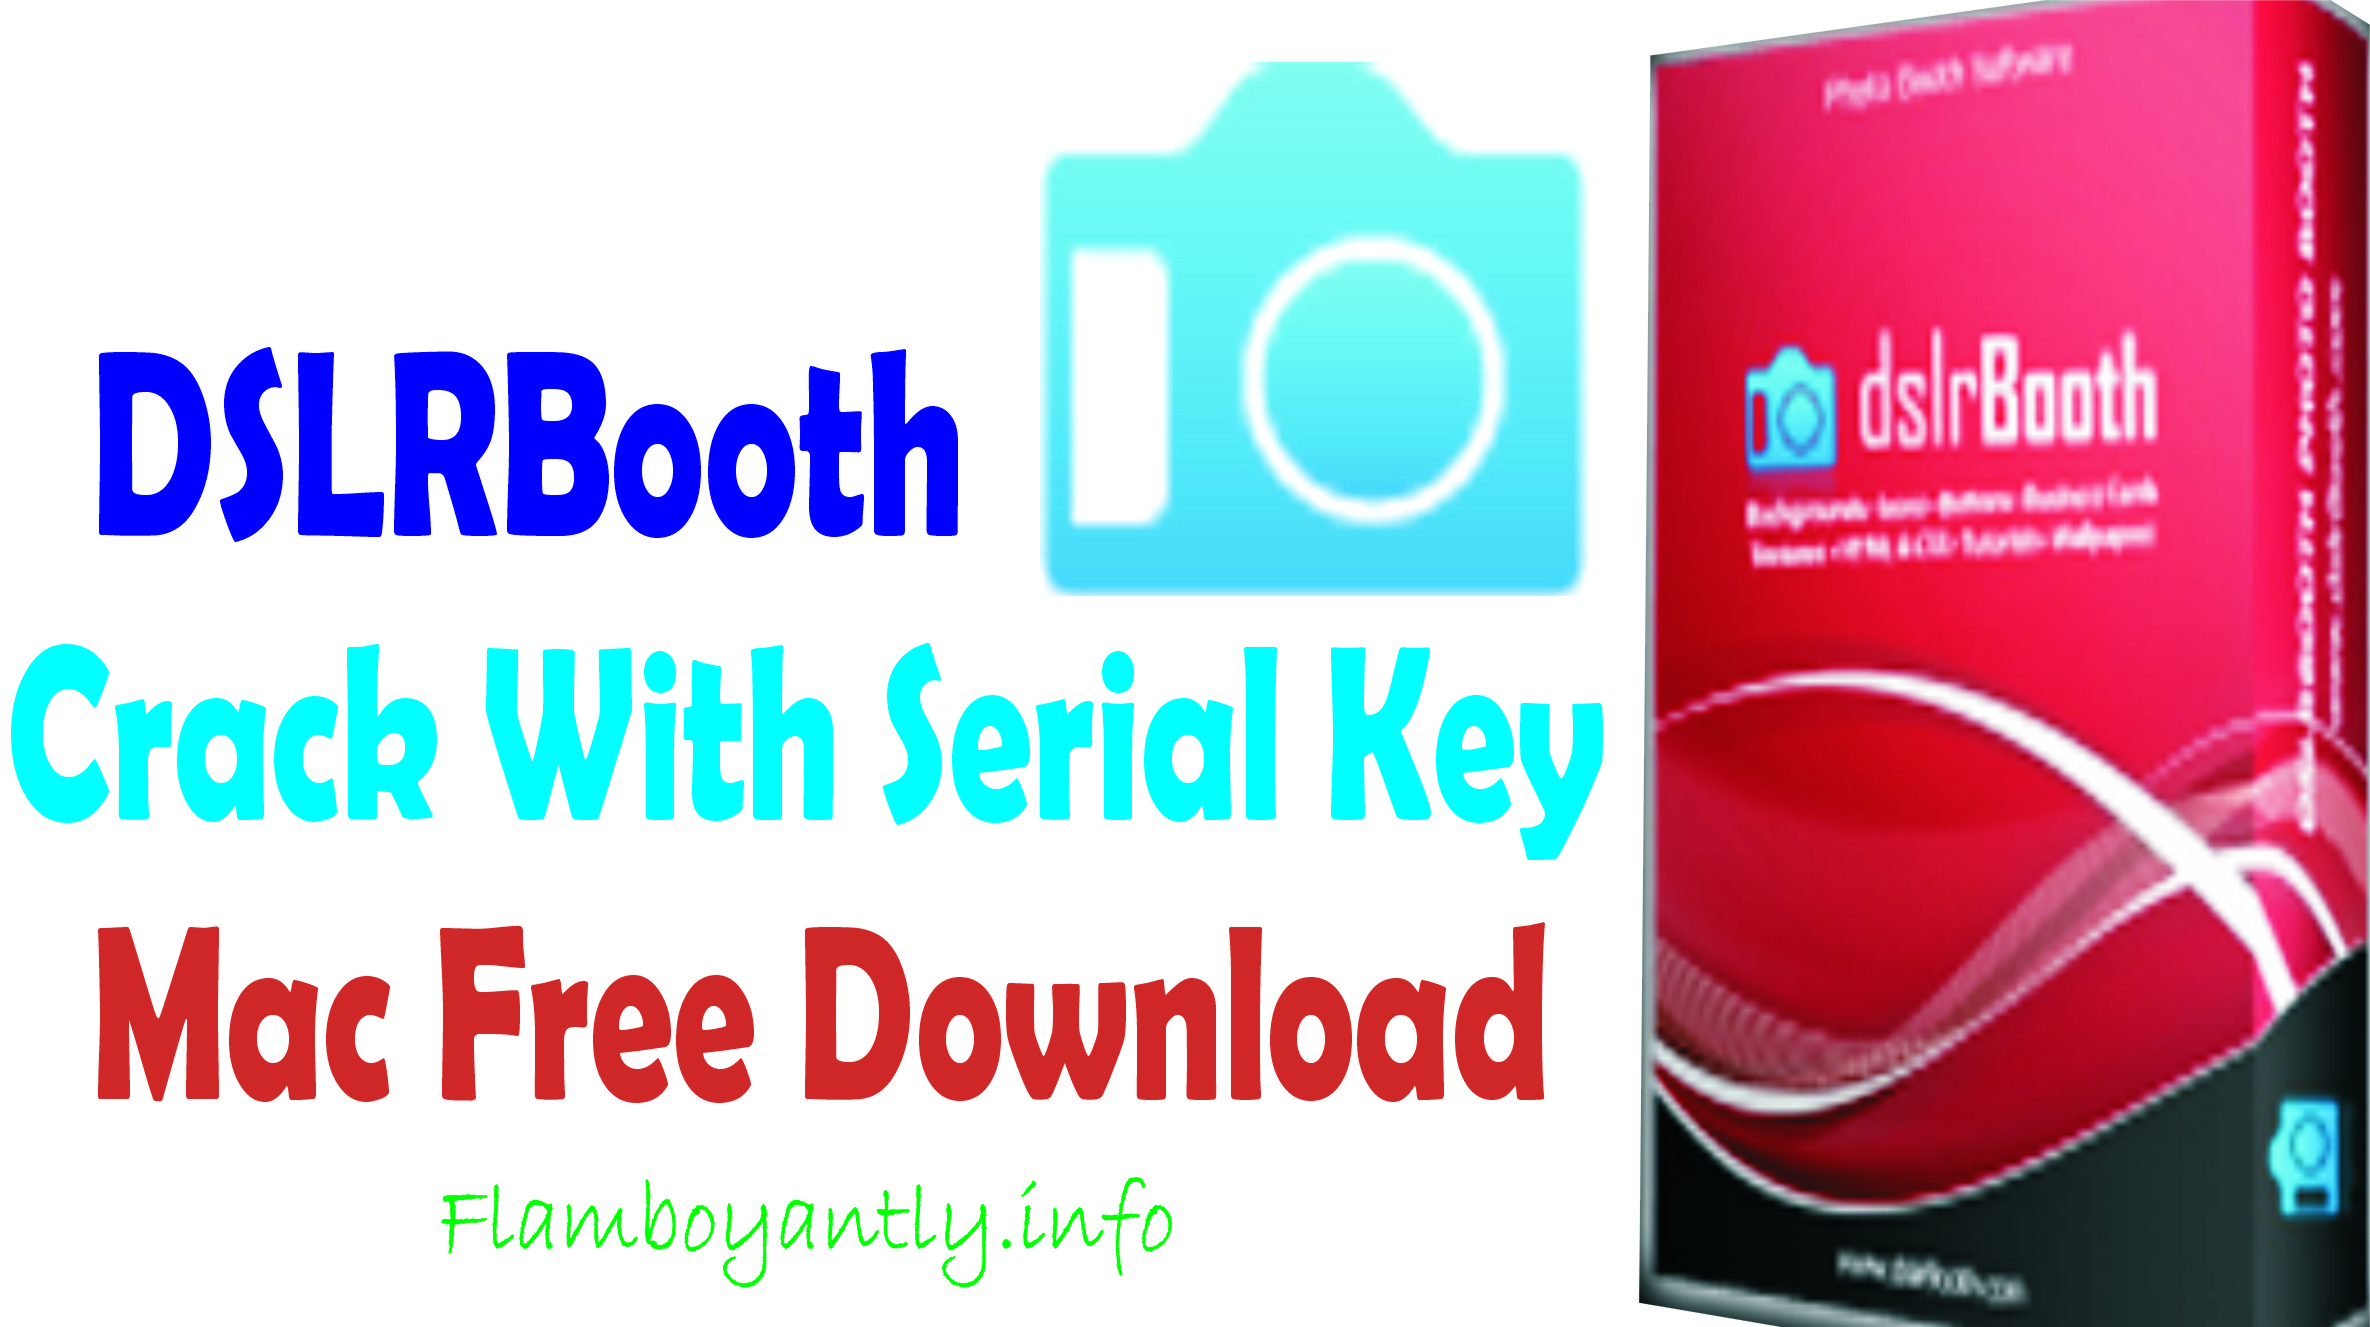 DSLRBooth Crack With Serial Key Mac Free Download